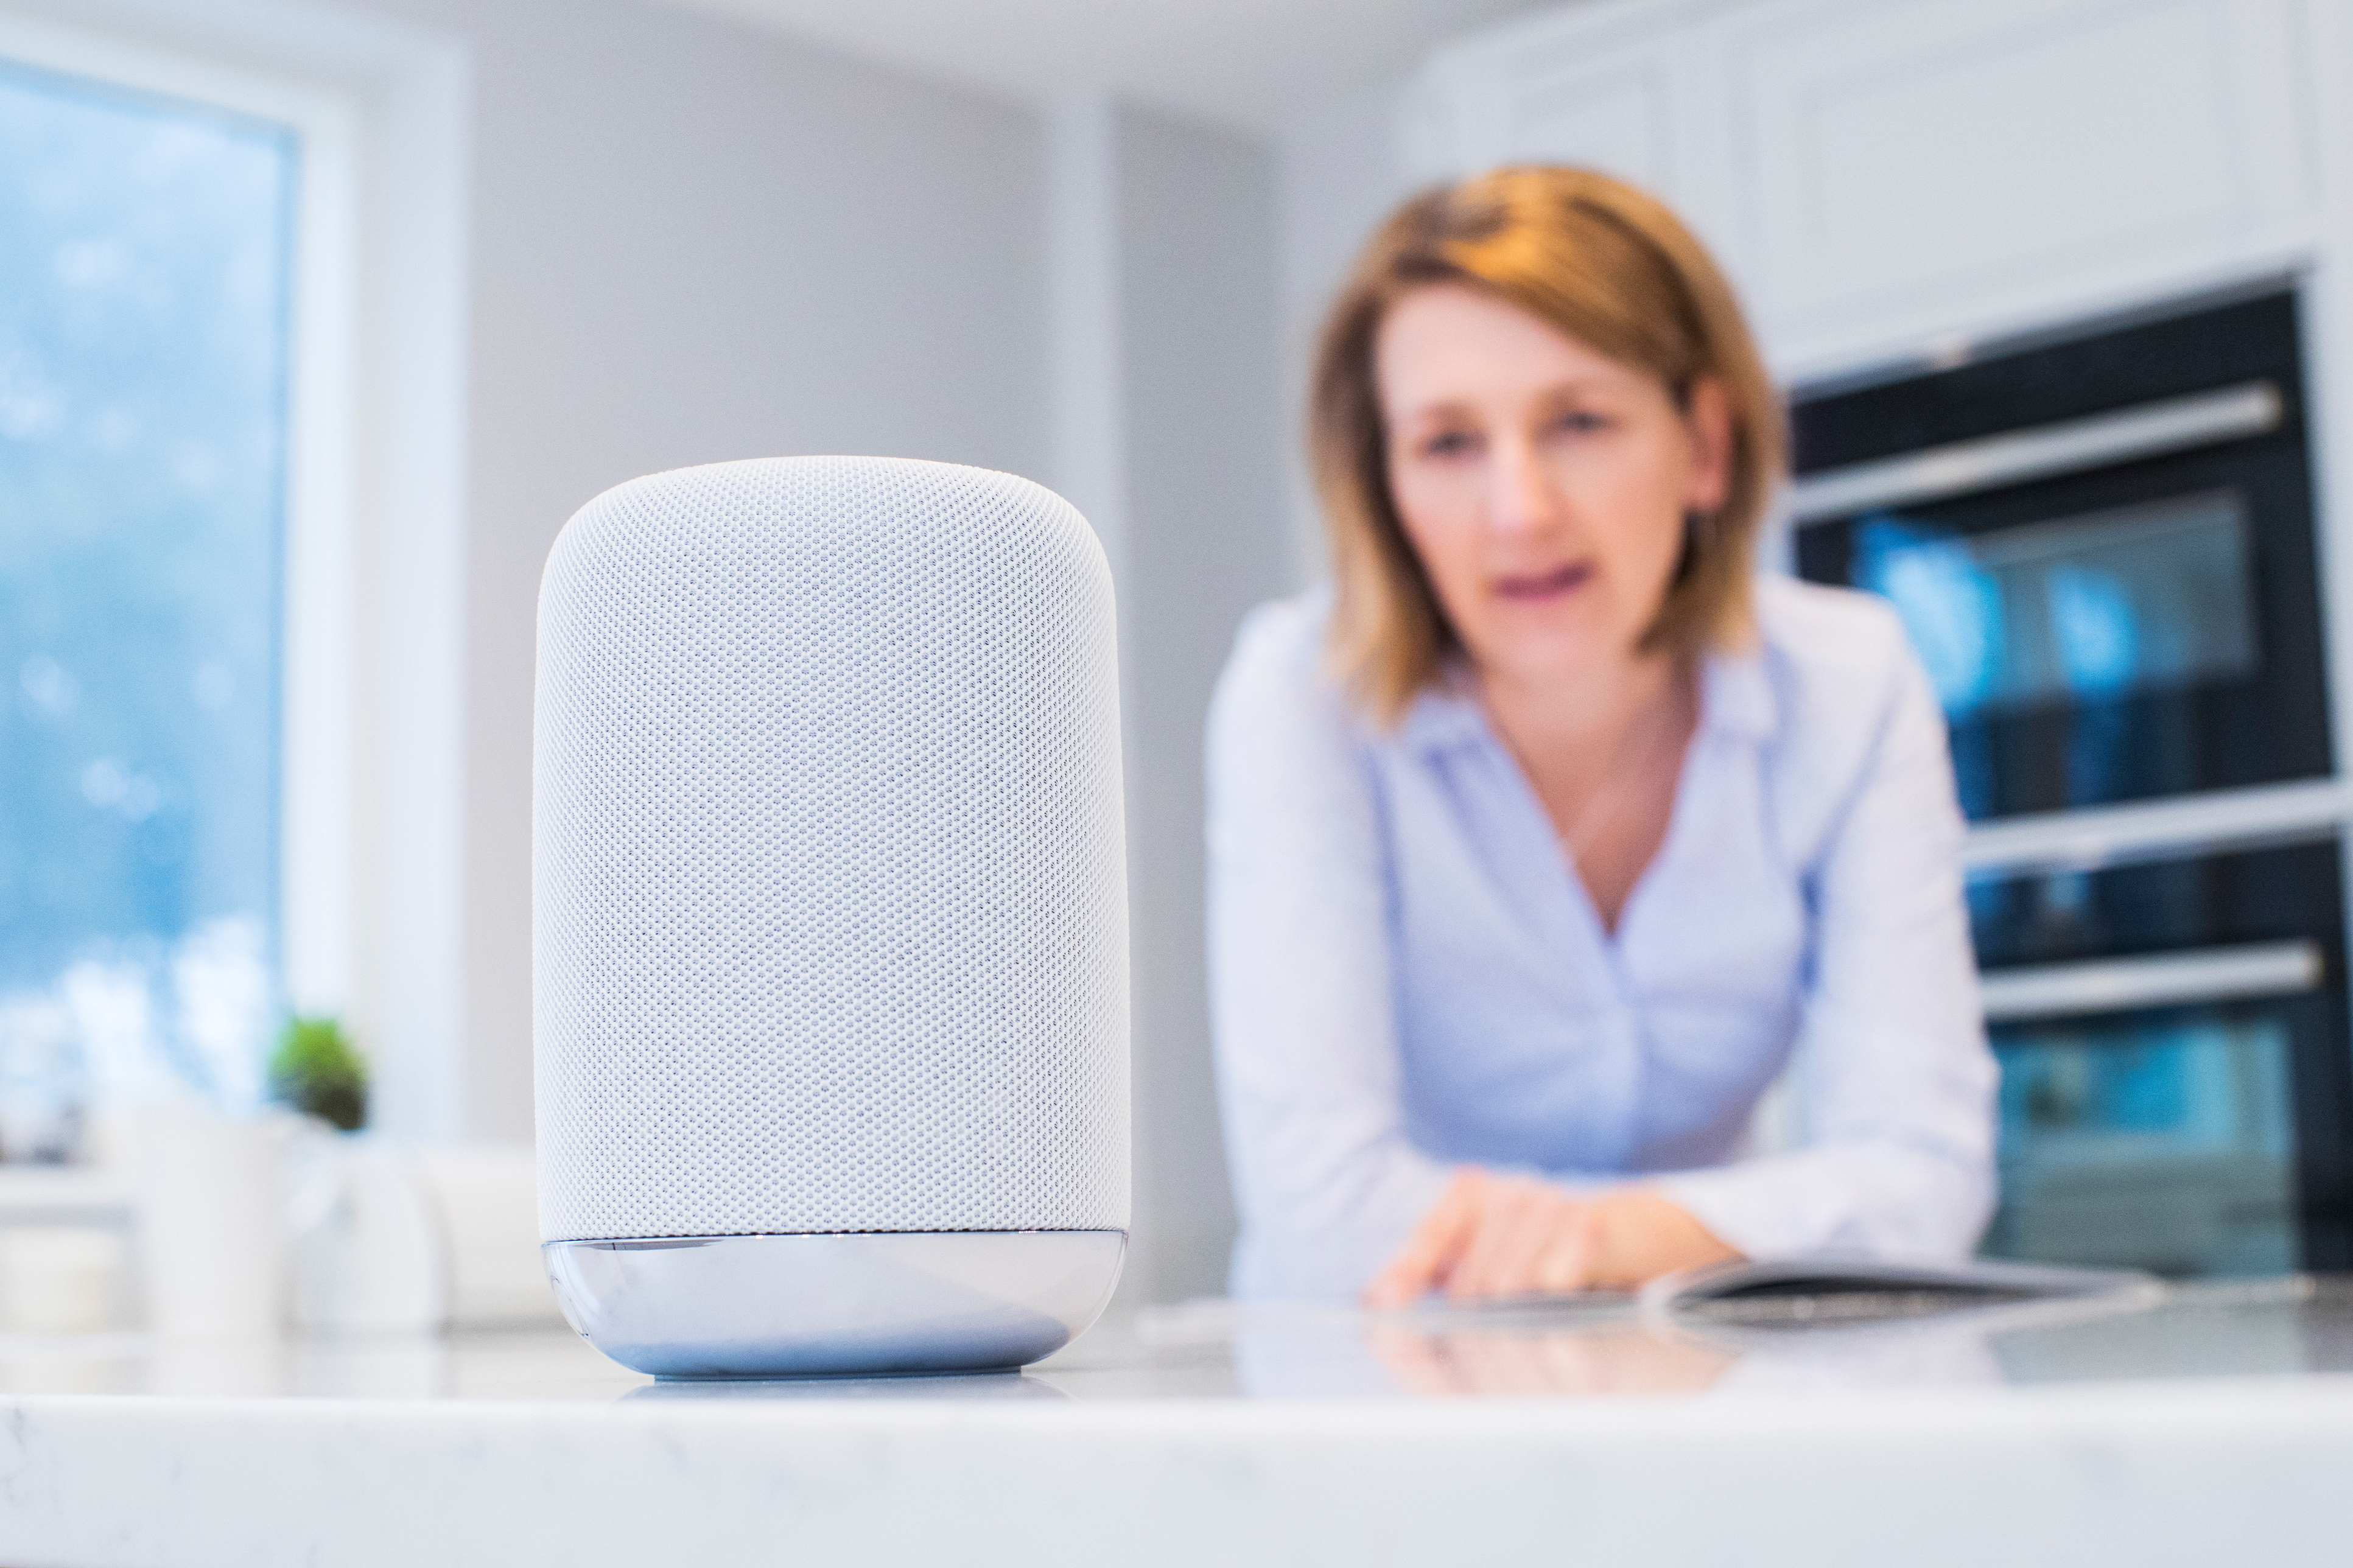 Voice-first technology helps older adults remain in their homes for longer.